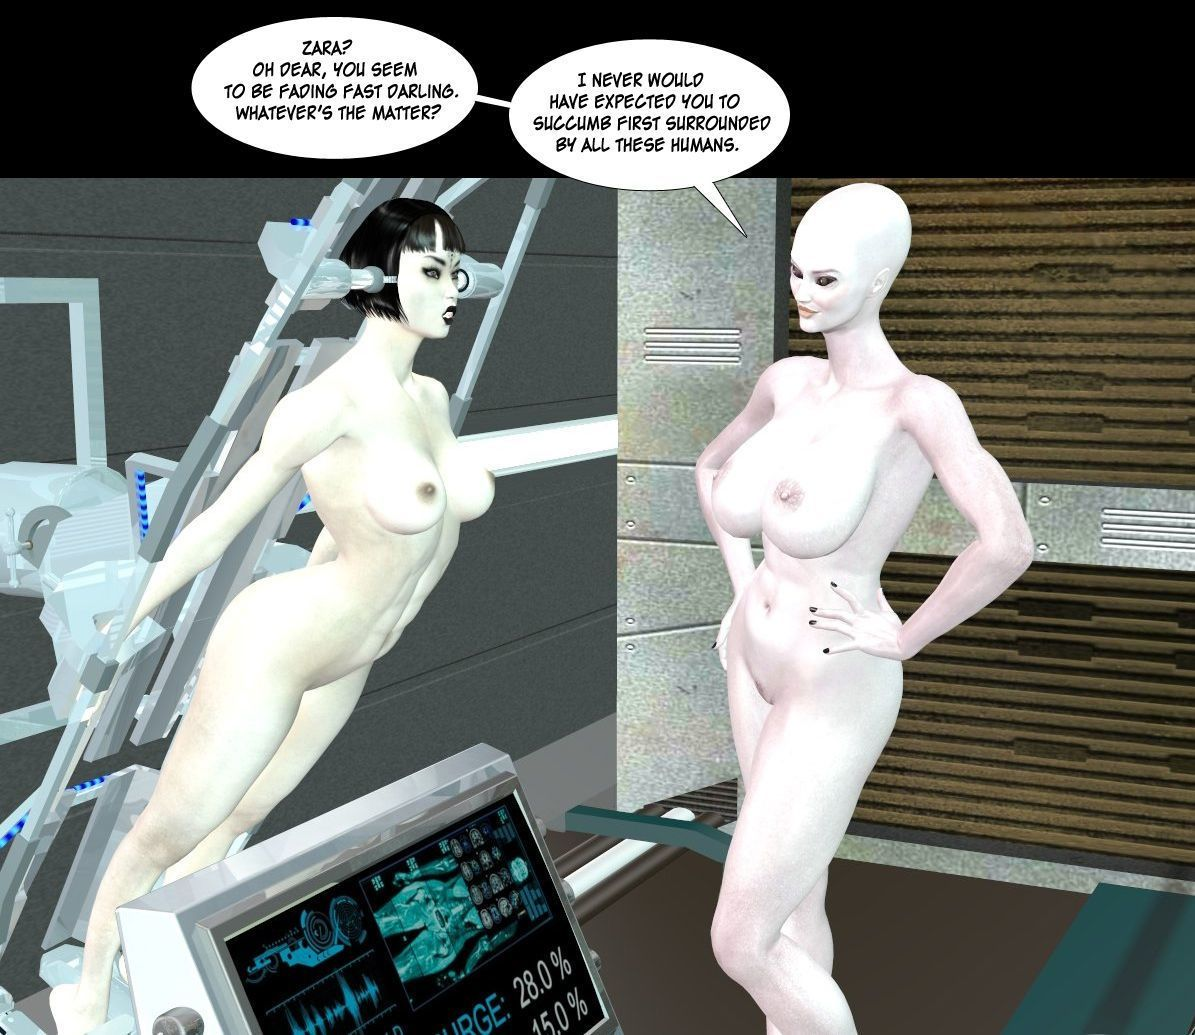 [dollmistress] Interactive Processing (With Captions)